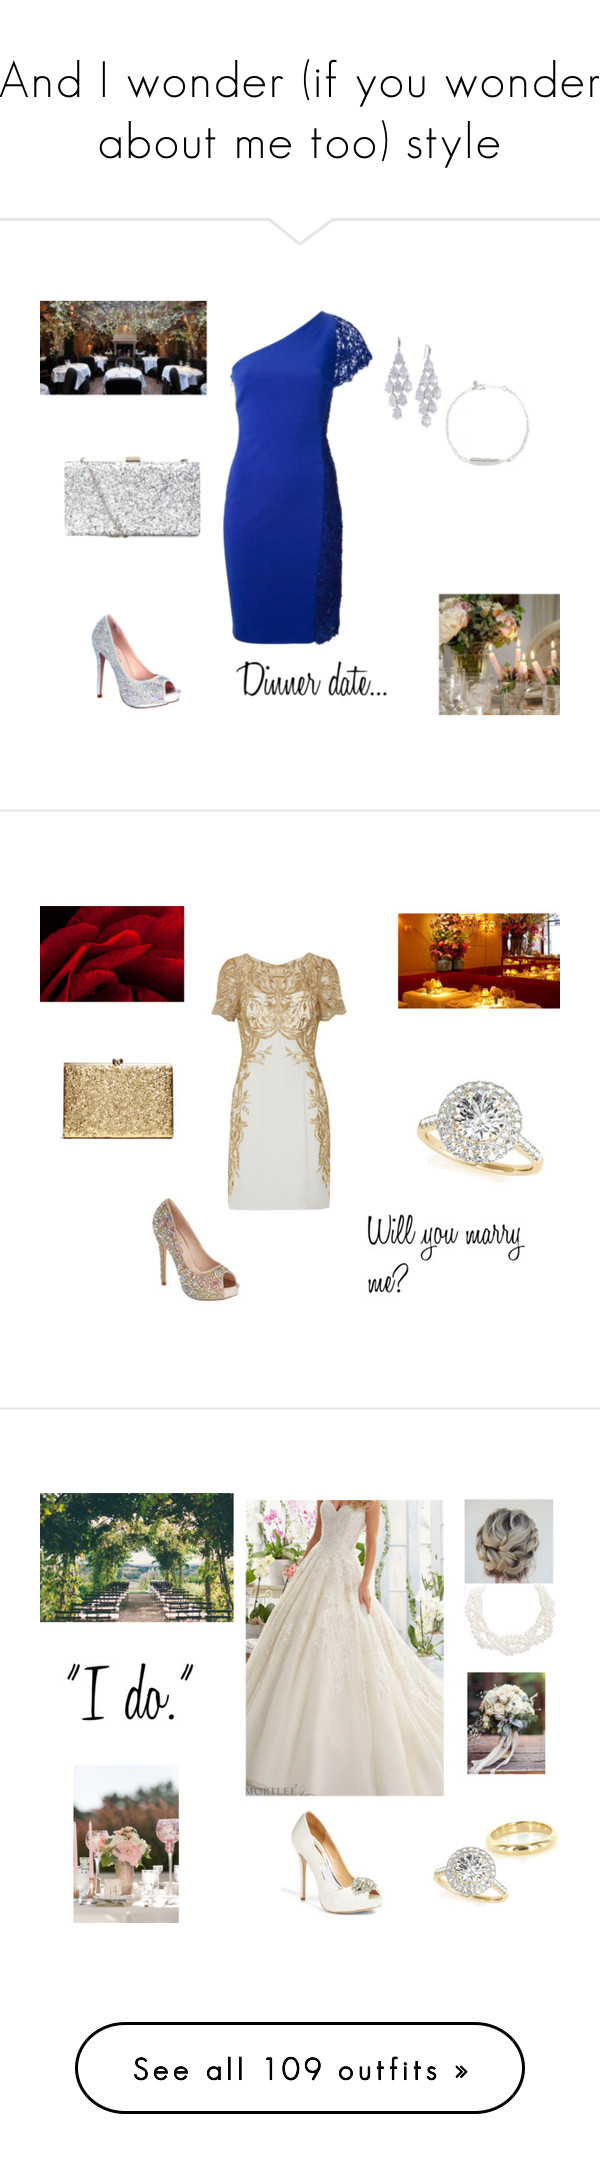 """And I wonder (if you wonder about me too) style"" by justinecmathez ❤ liked on Polyvore featuring H&M, Anja, Dot & Bo, Nordstrom, Masquerade, Accessorize, Therapy, GURU and Biarritz"